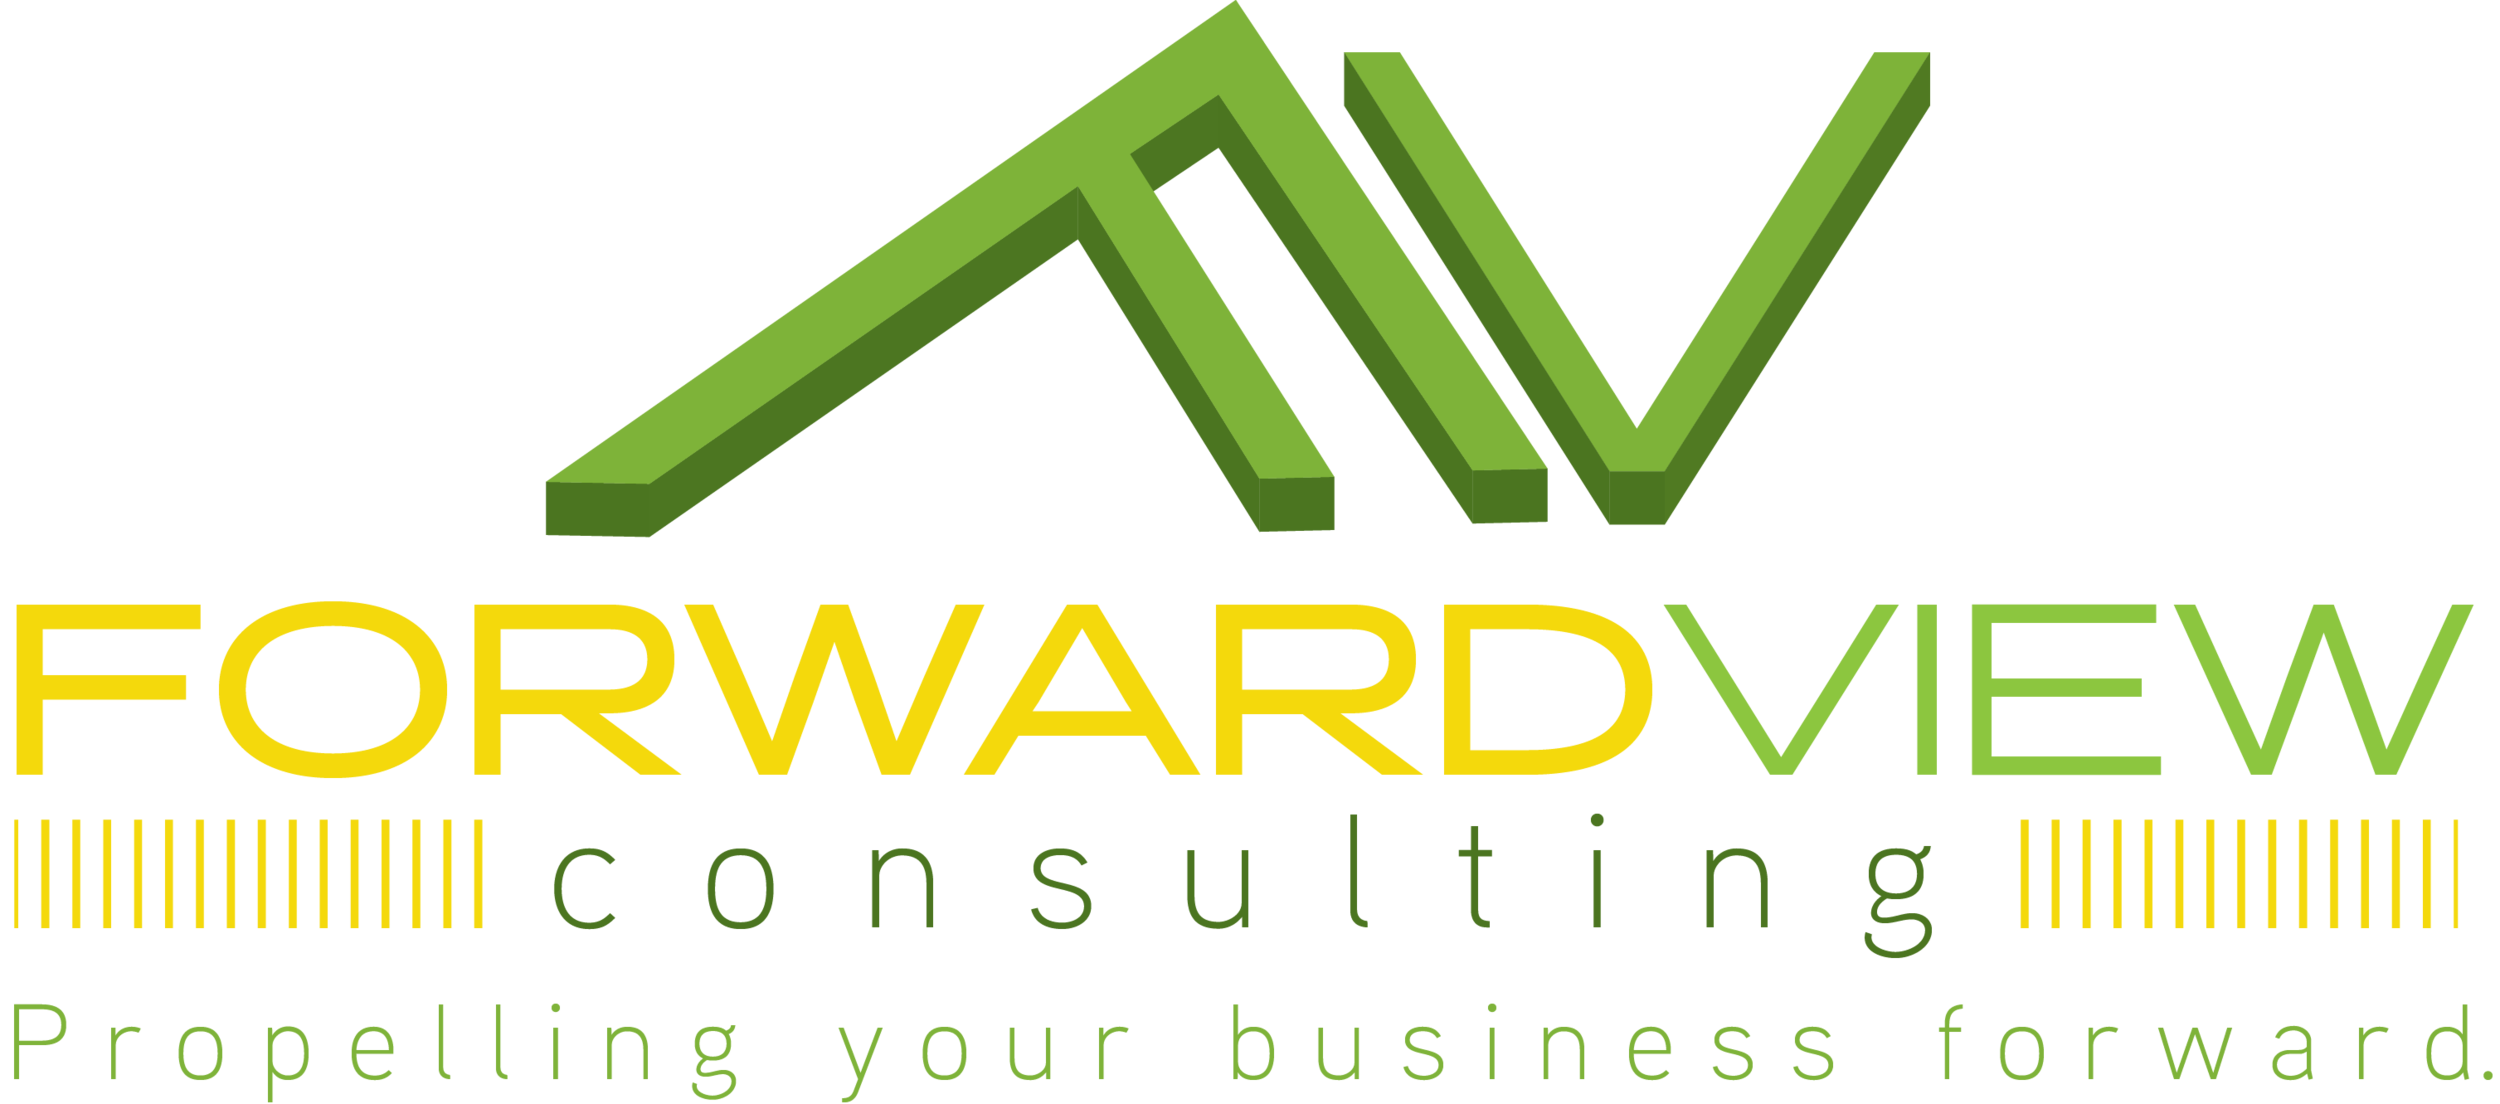 Note that Forward View has integrated our slogan in the logo.